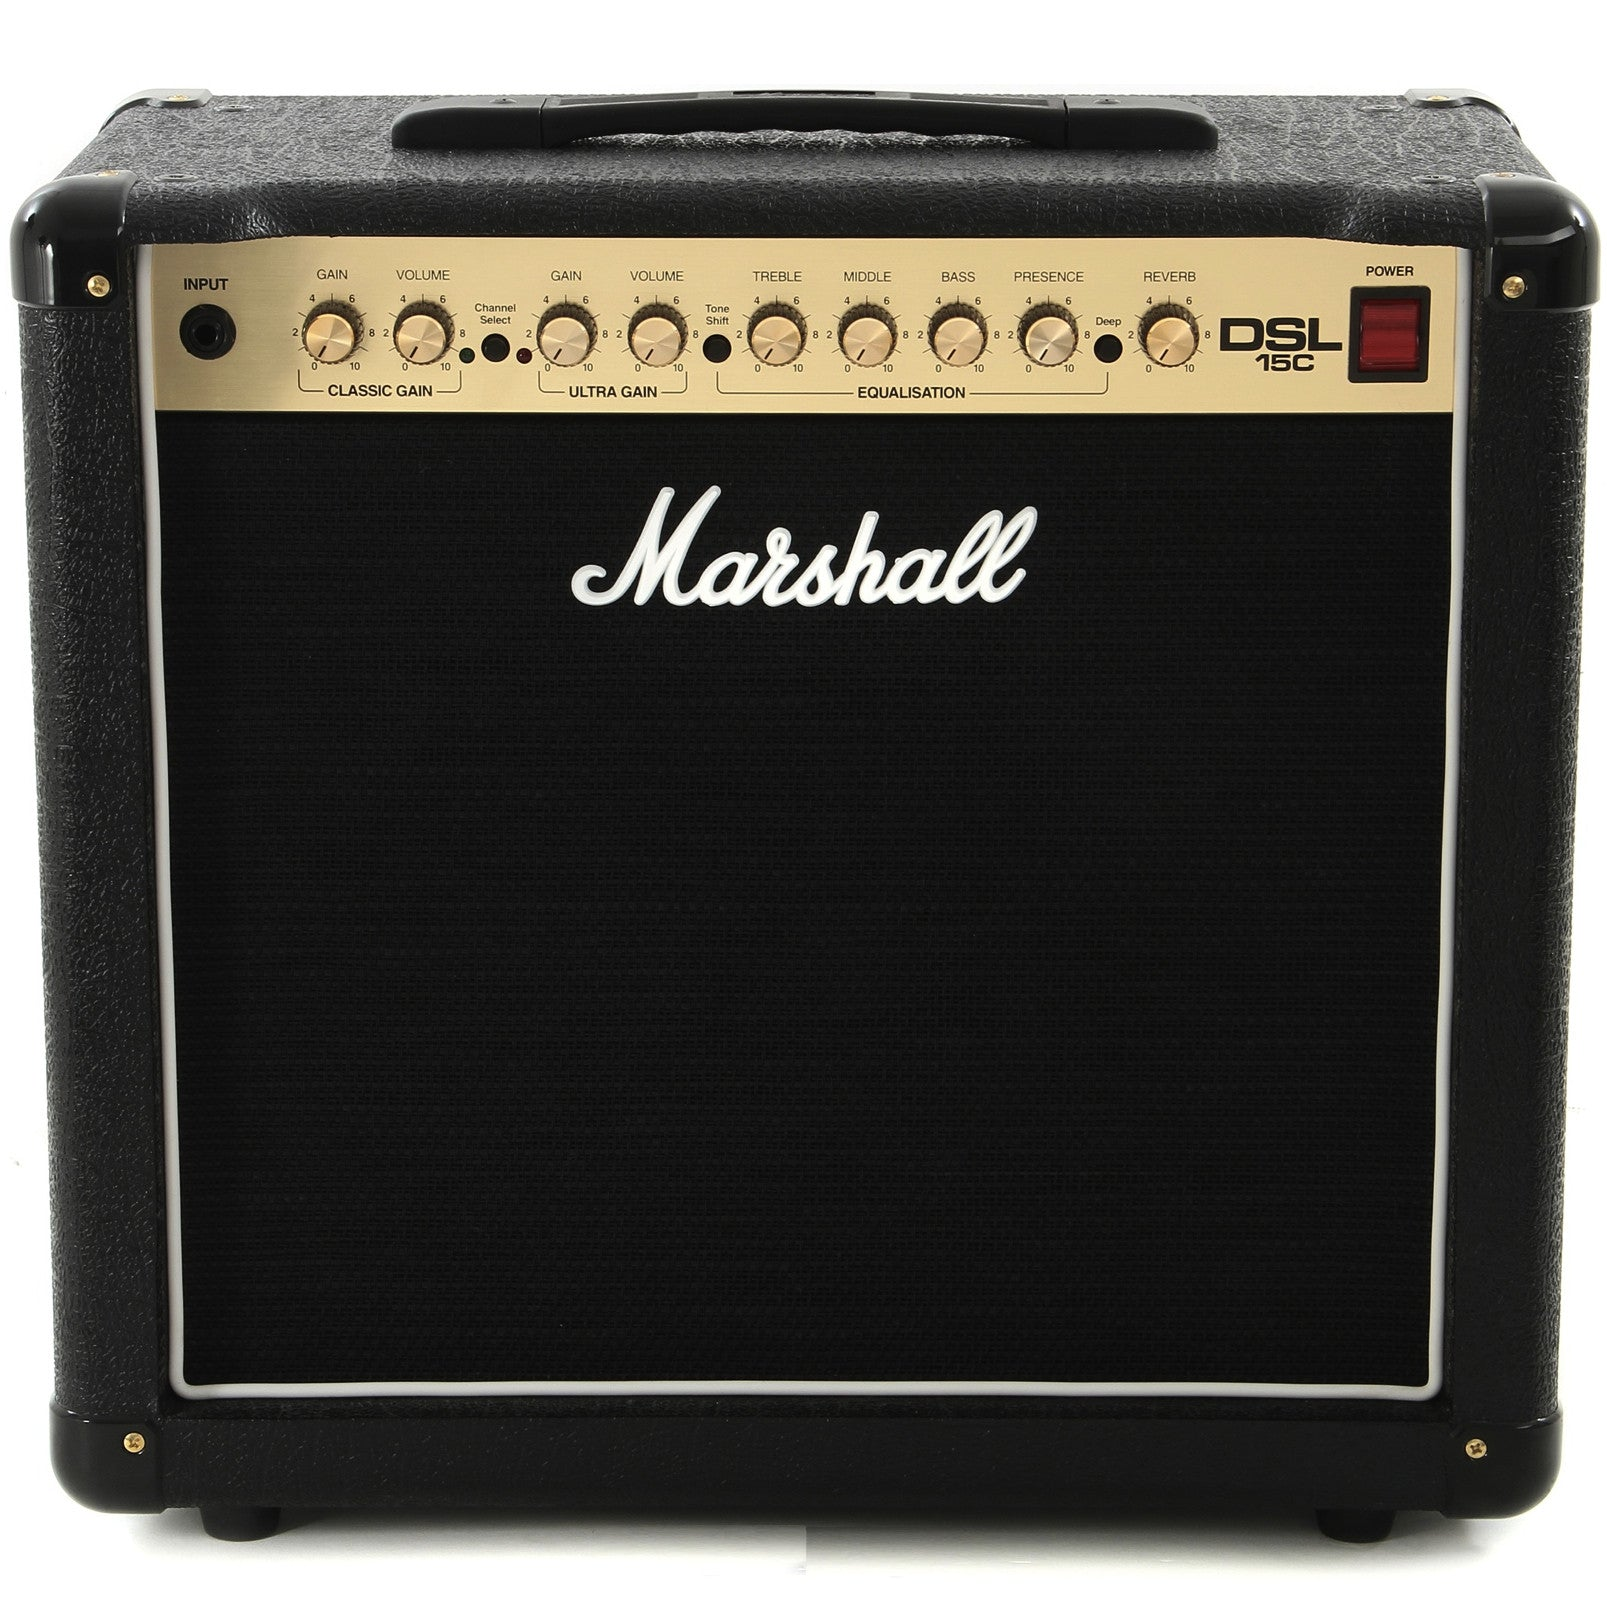 "Marshall DSL15C 15/7.5-watt 1x12"" Tube Combo Amp 